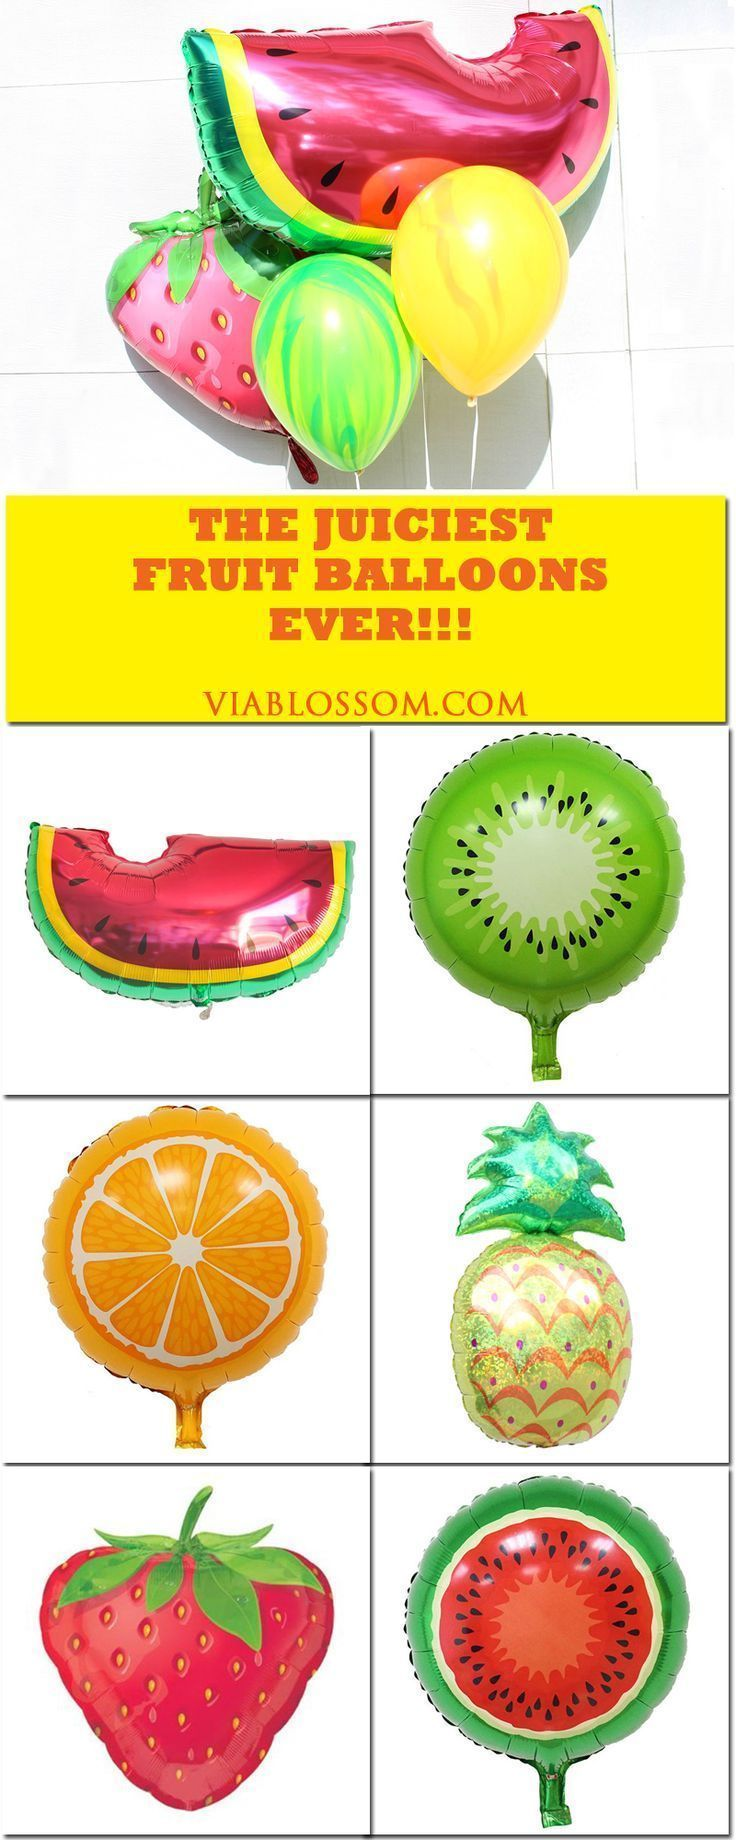 Fruit Balloons for all your summer parties!!  Pineapple balloons, strawberry balloons, watermelon balloons and more!!  If you are planning a Hawaiian Luau Party or a Tutti Frutti Party then these Fruity Balloons are what you need!